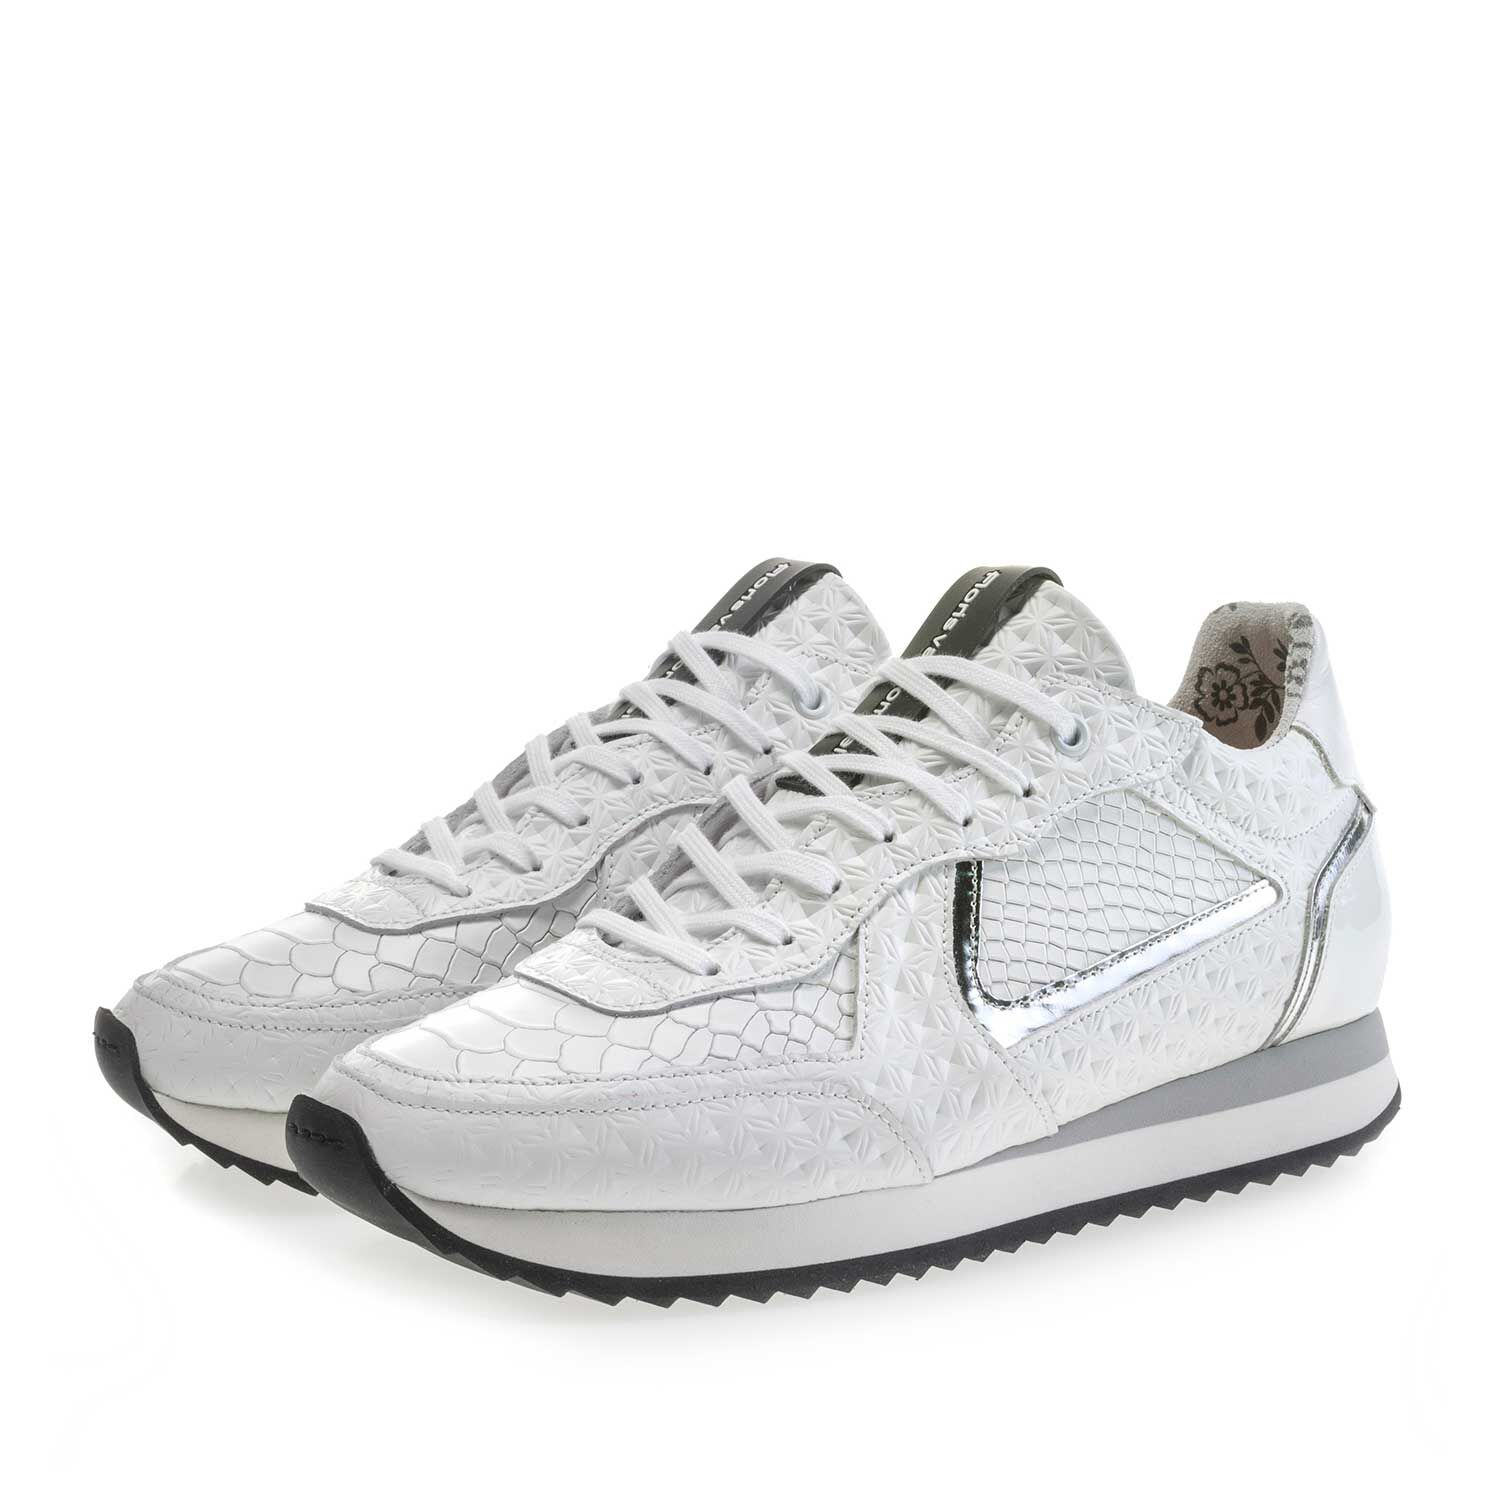 Chaussures Blanches Avec Boucle Pour Femmes YDbUALZUIe